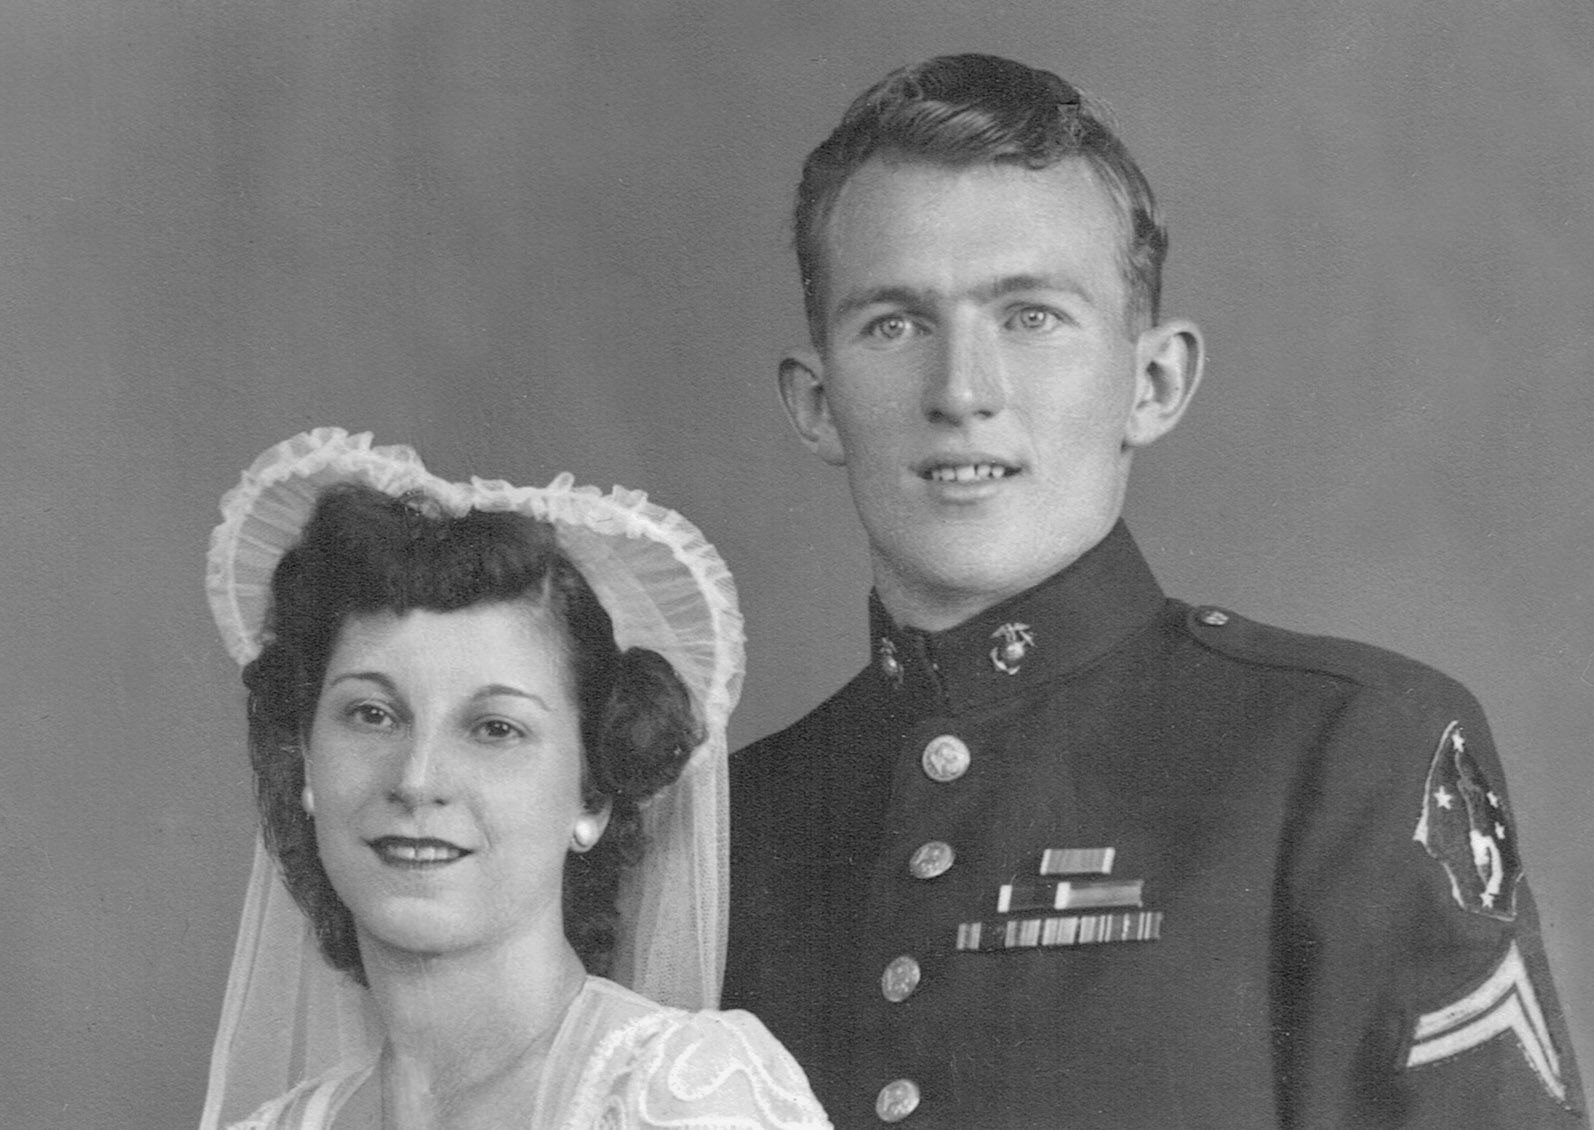 Wedding portrait of William and his bride, August 4, 1946.